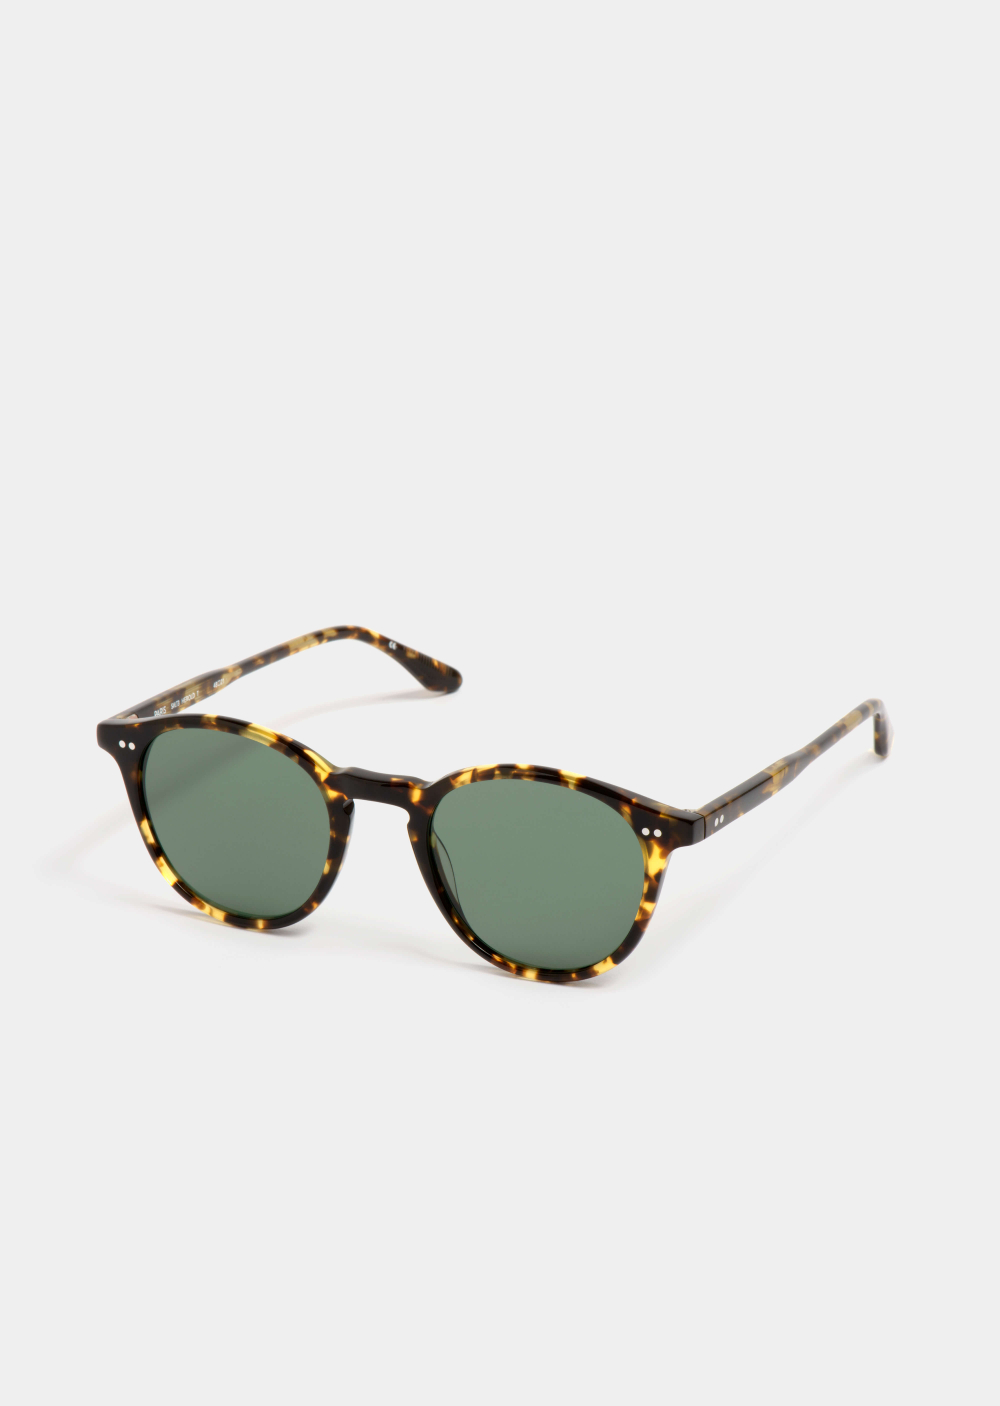 PETER AND MAY -  - LT3 Herold tortoise